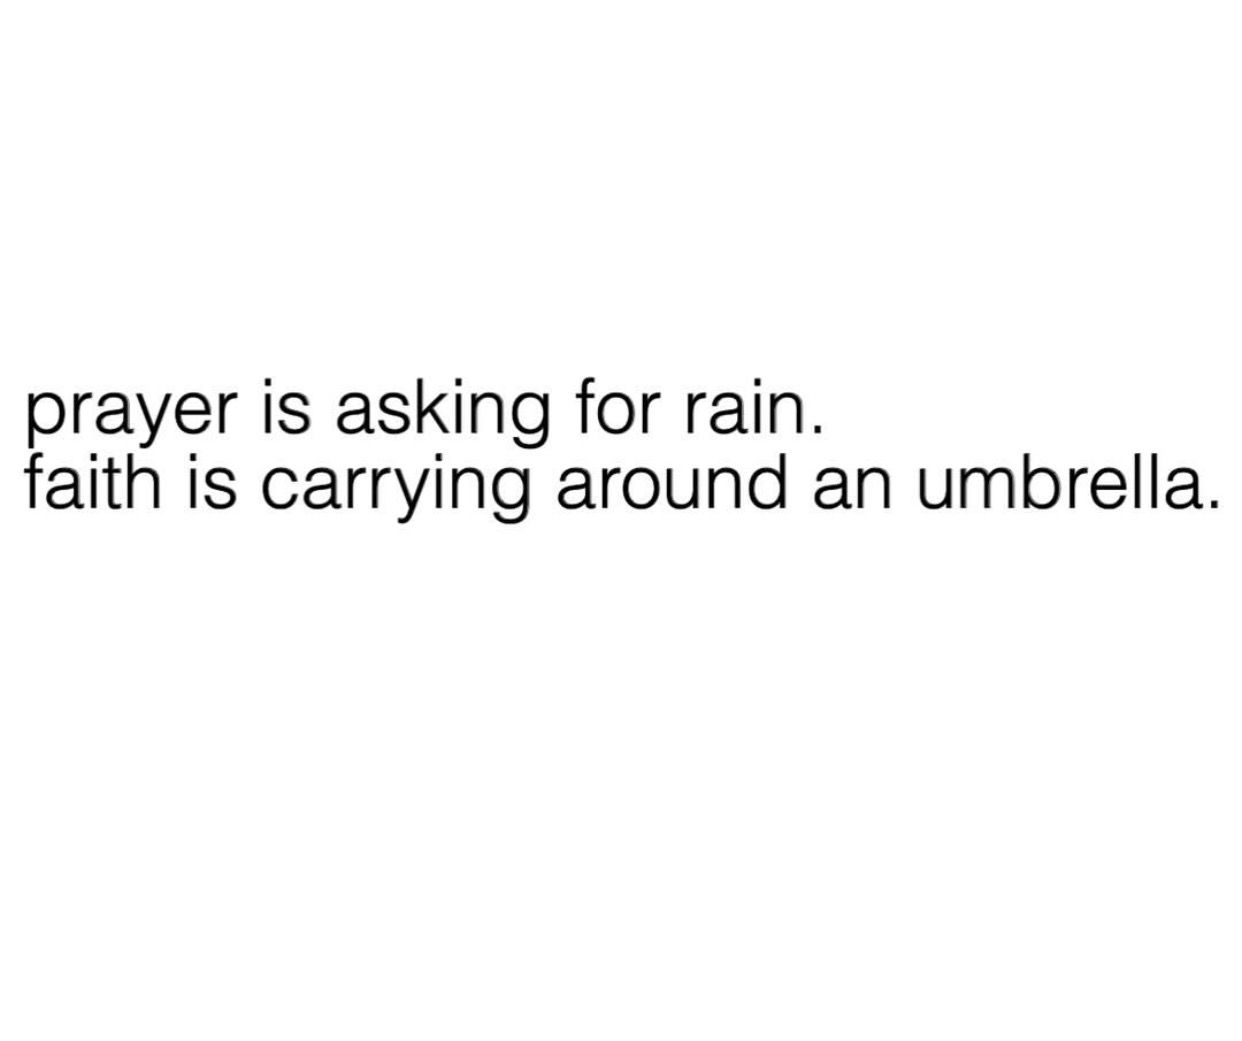 Prayer is asking for rain  Faith is carrying an umbrella